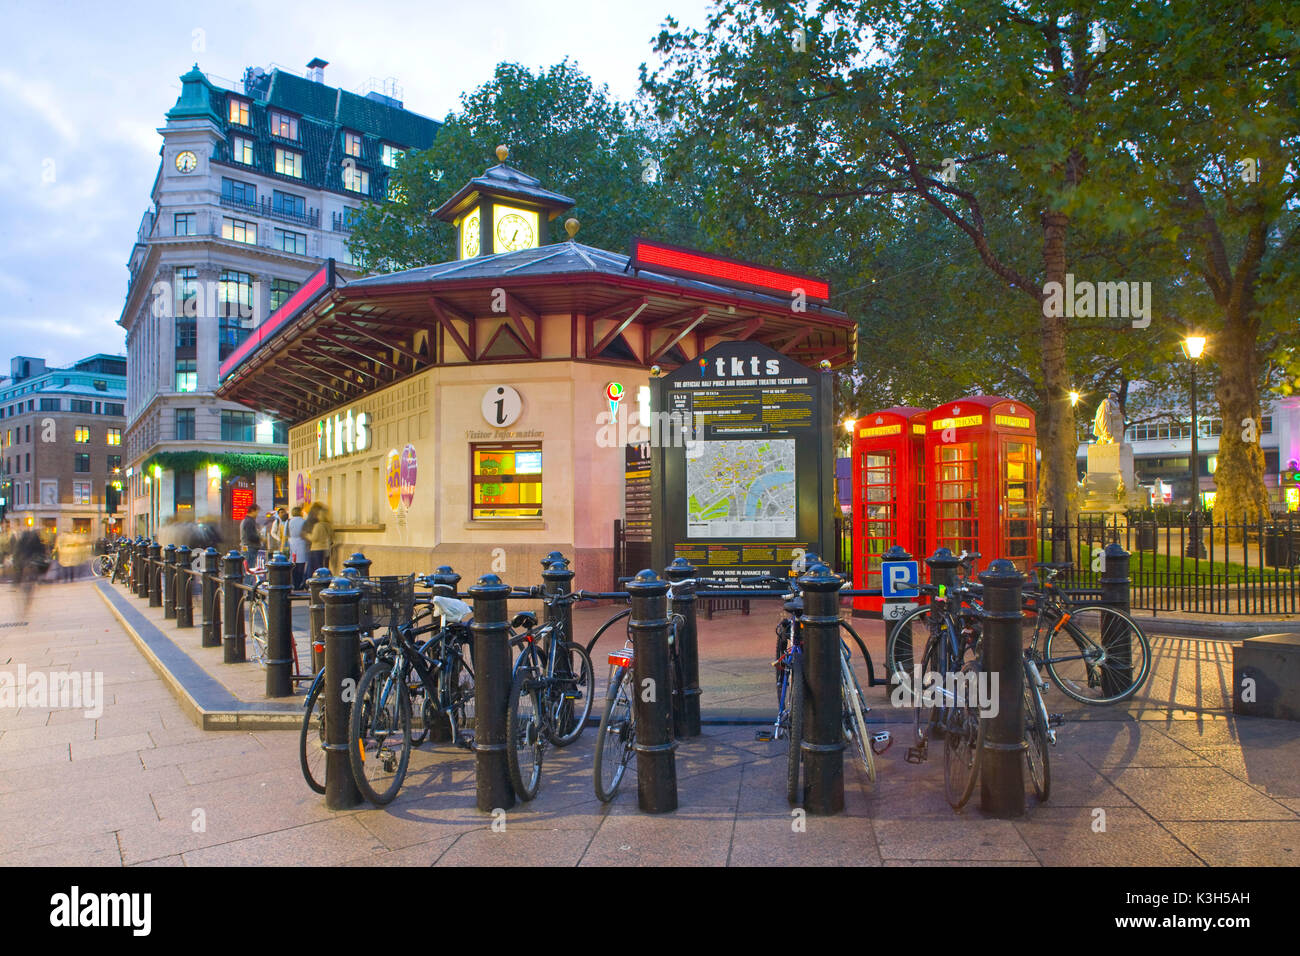 Theatre Tickets Kiosk, Leicester Square, London, England - Stock Image